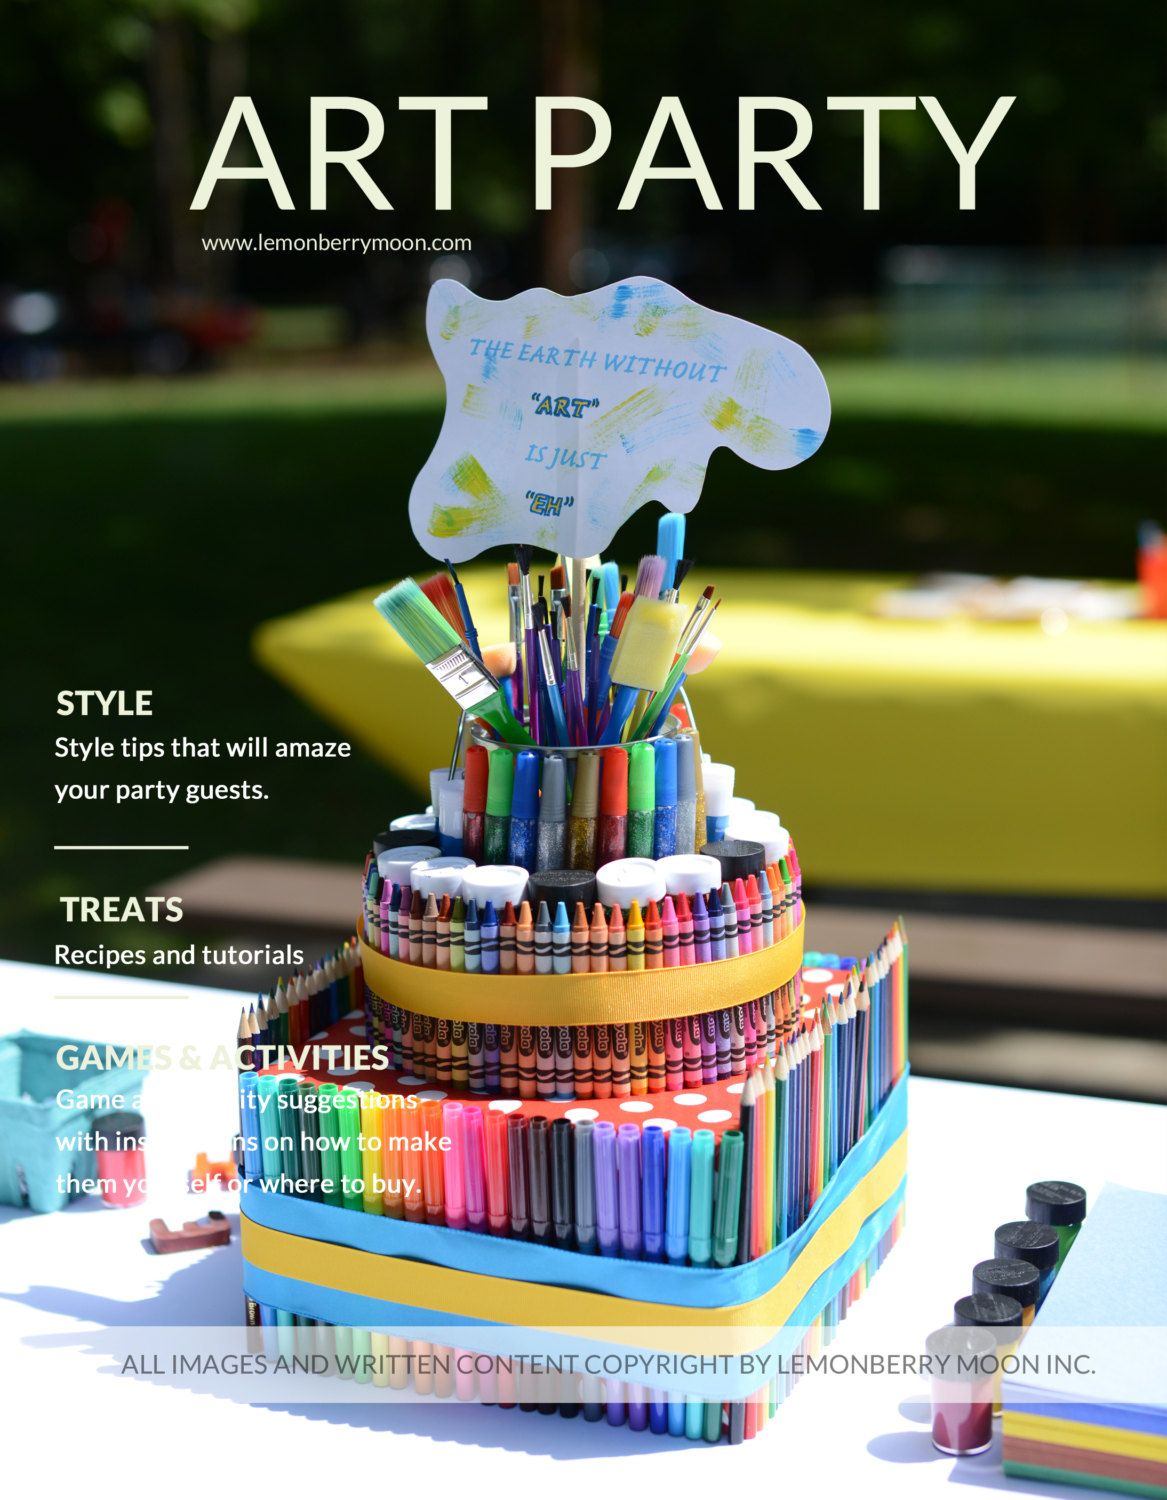 Party plan kids rainbow art theme birthday party plan for Arts and crafts for 10 year old girls